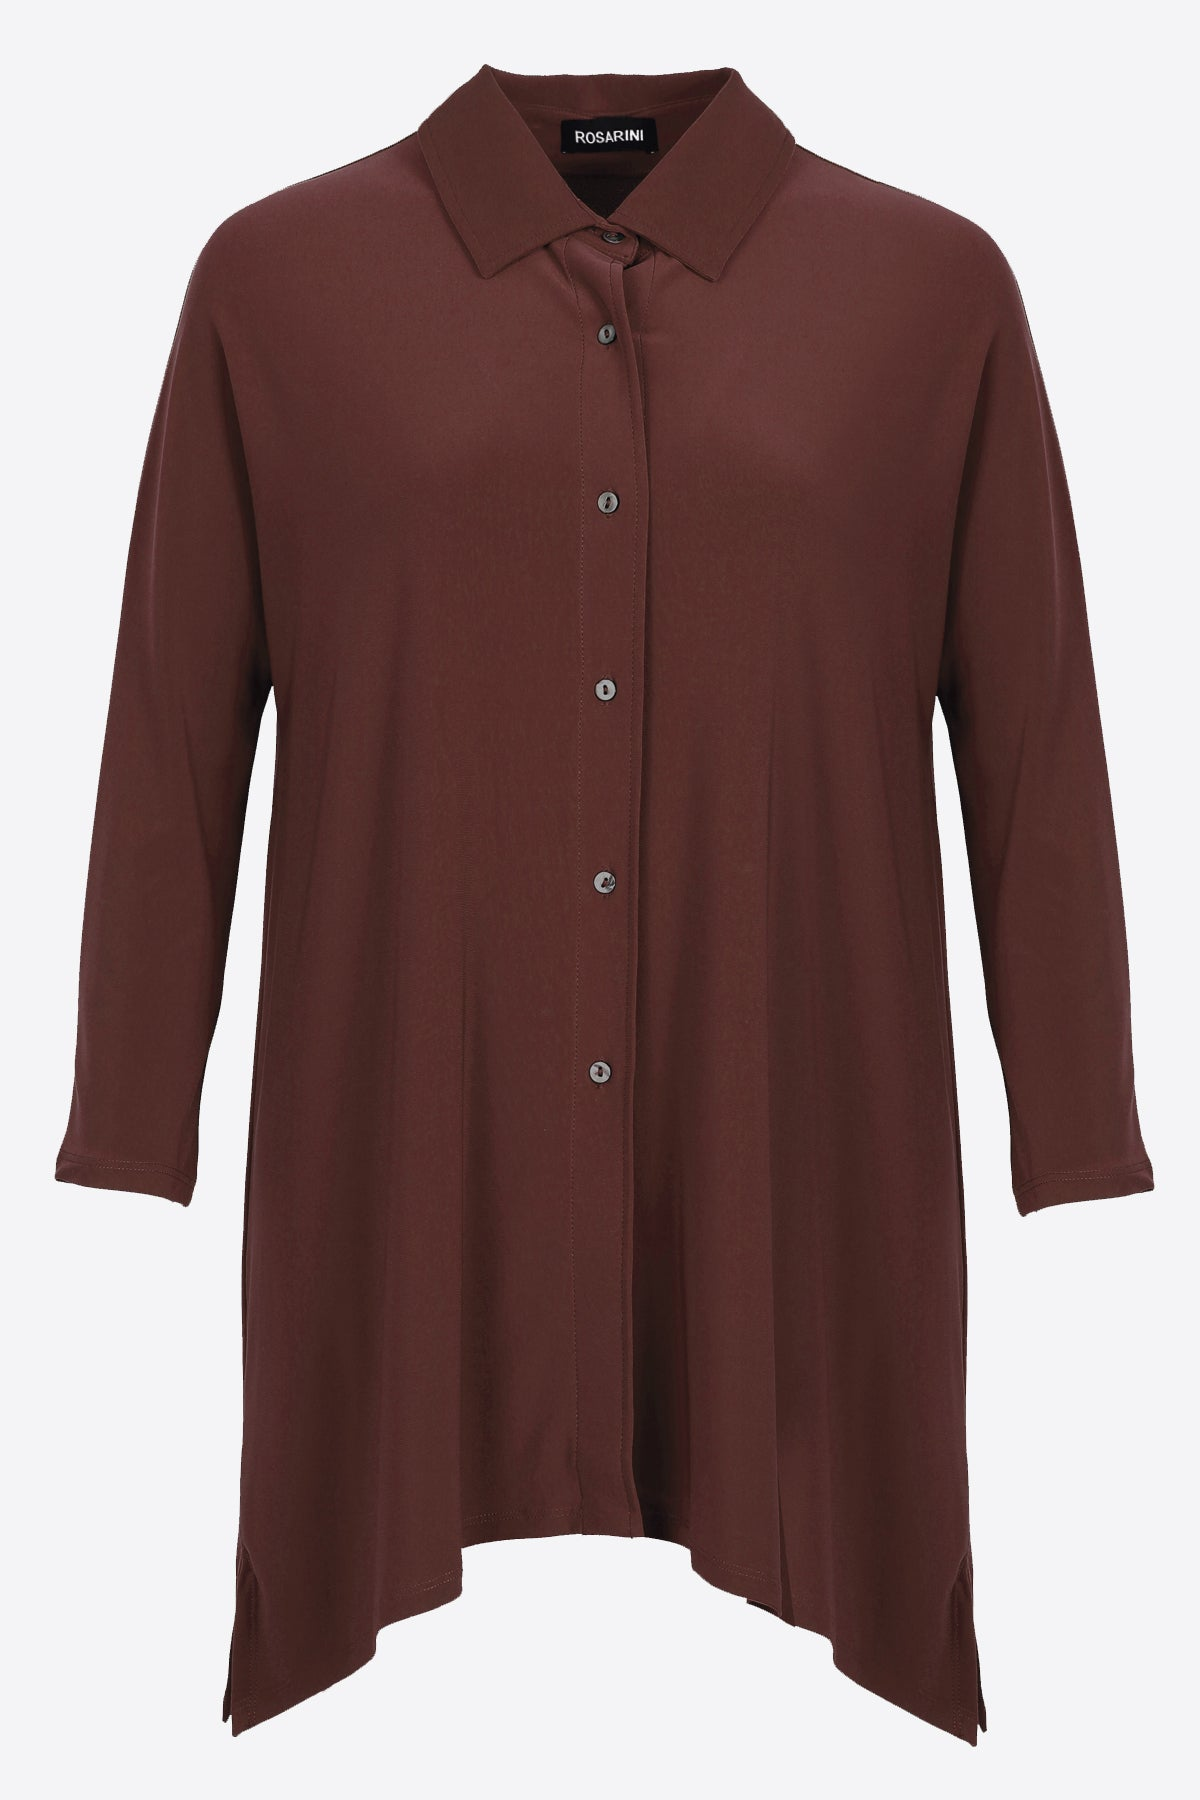 BUTTON SHIRT WITH CURVED HEM Chestnut